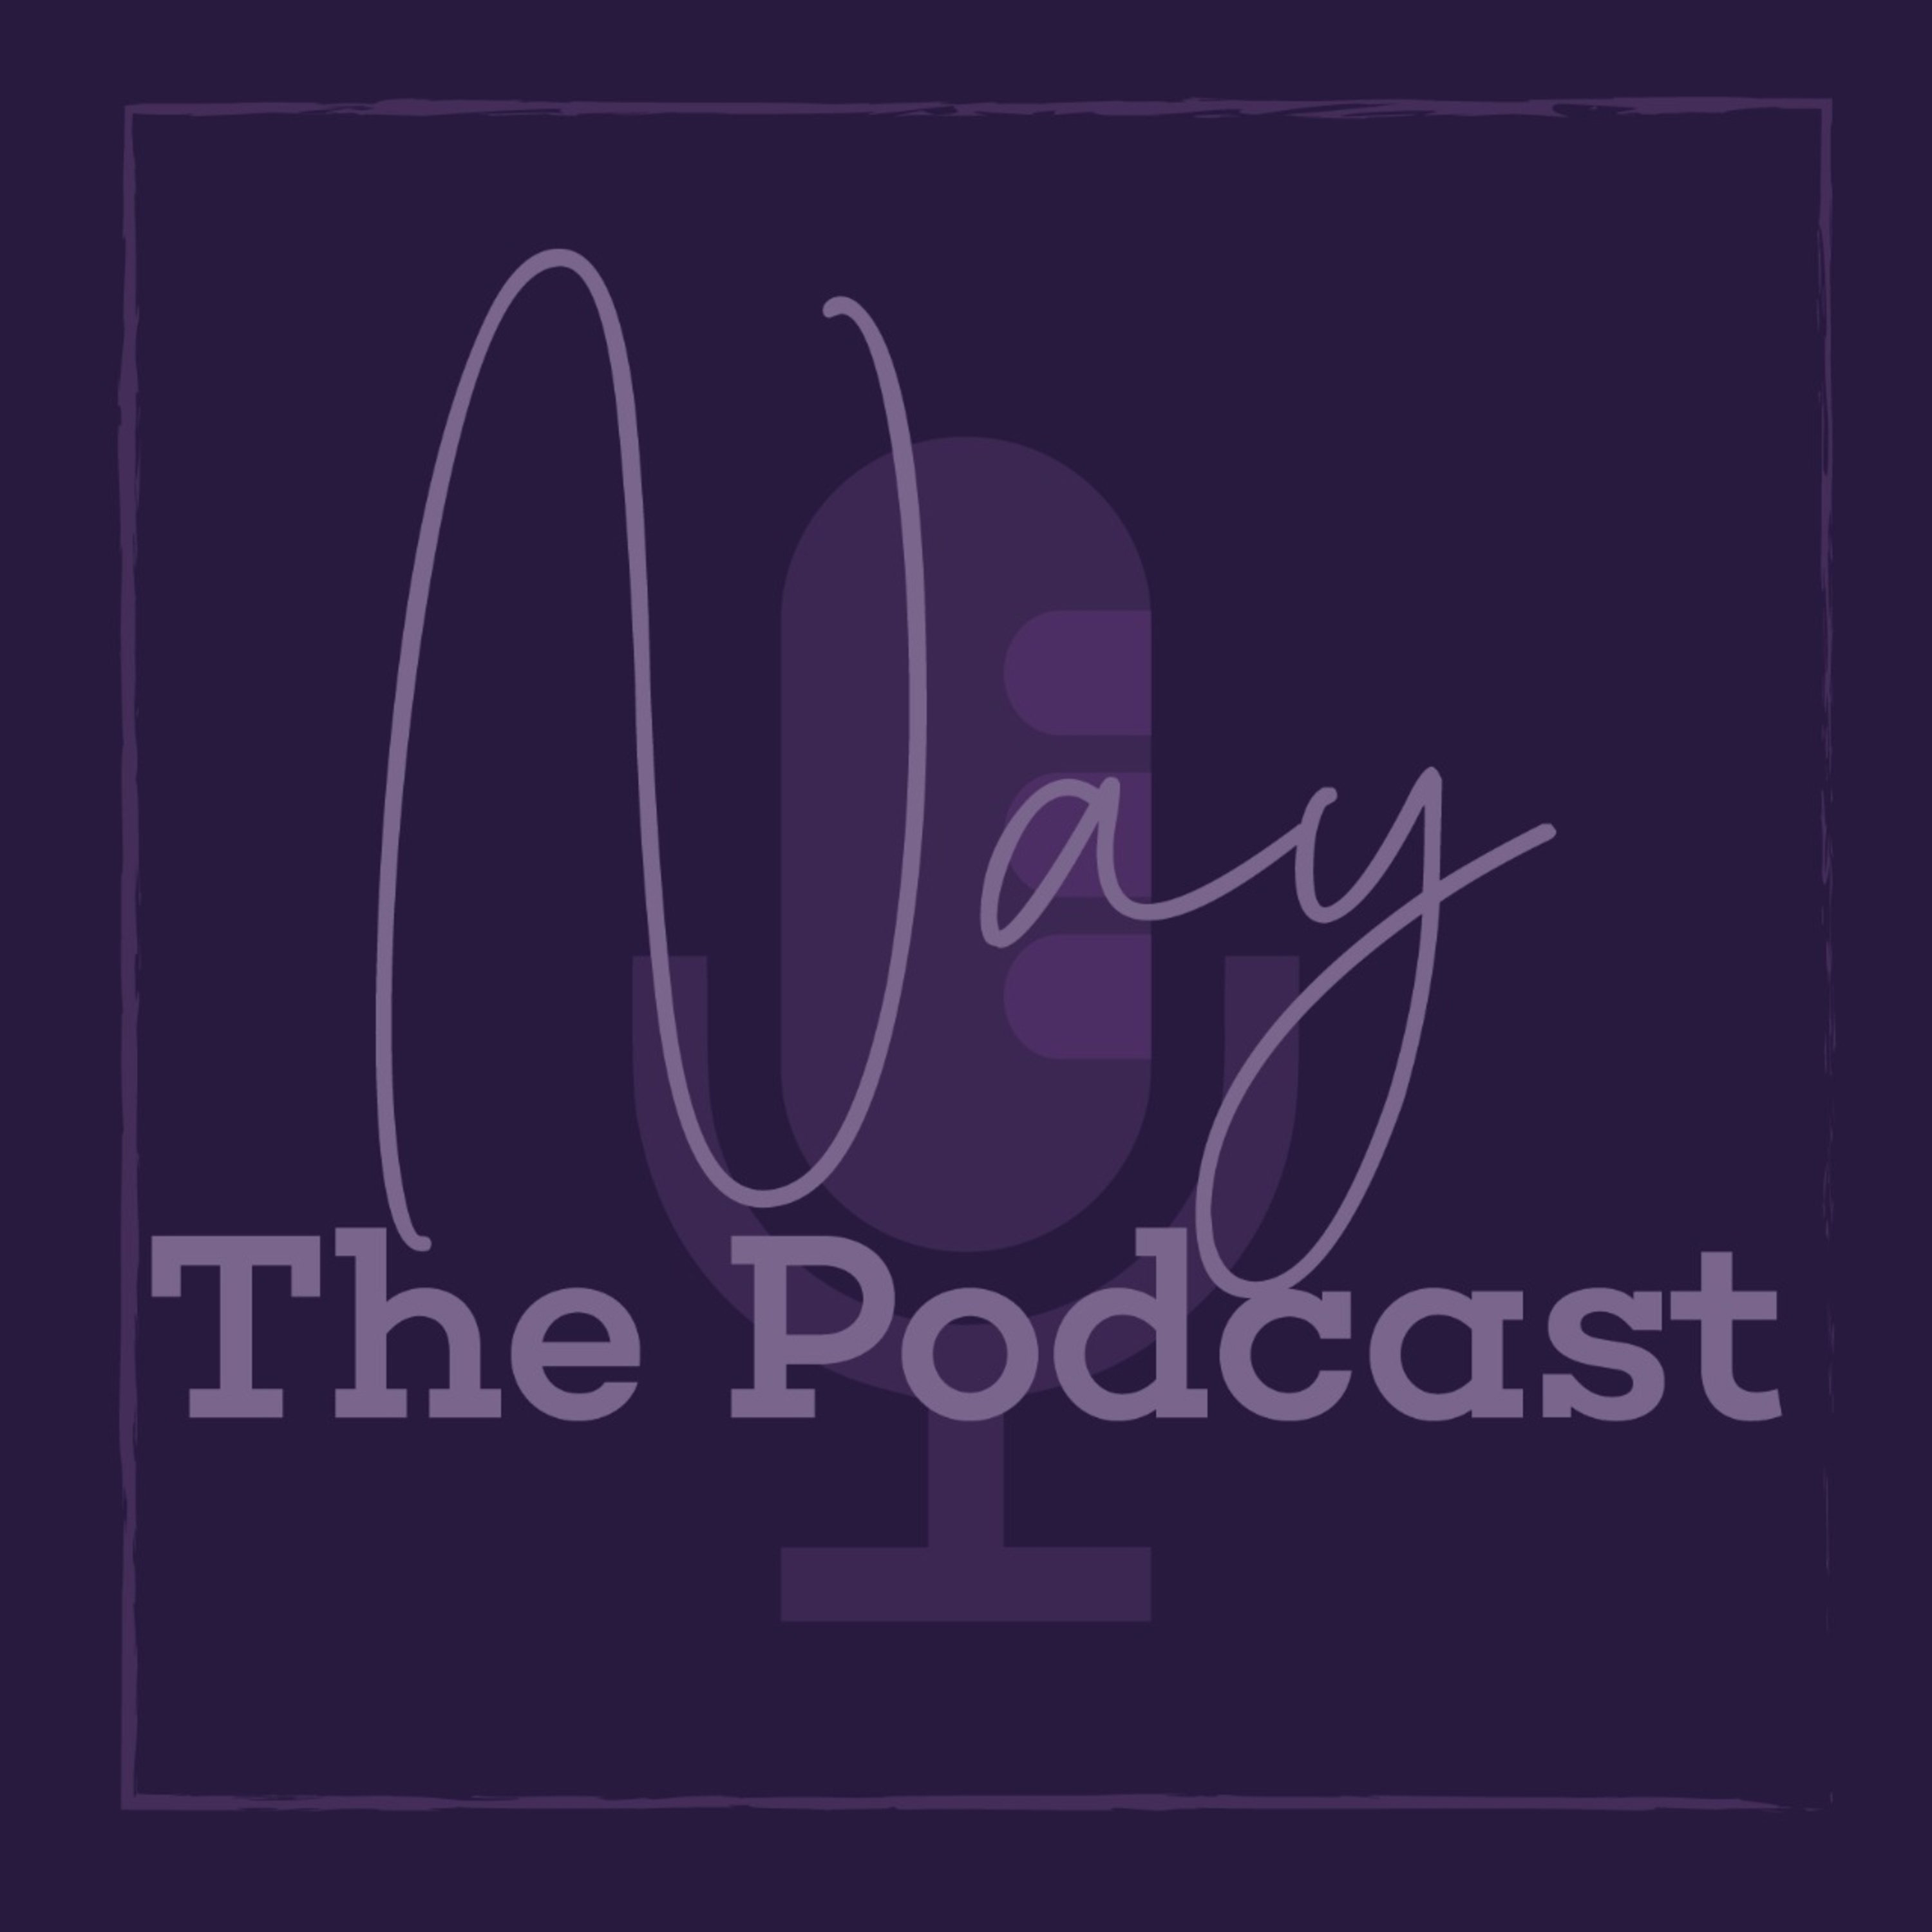 NAY: THE PODCAST